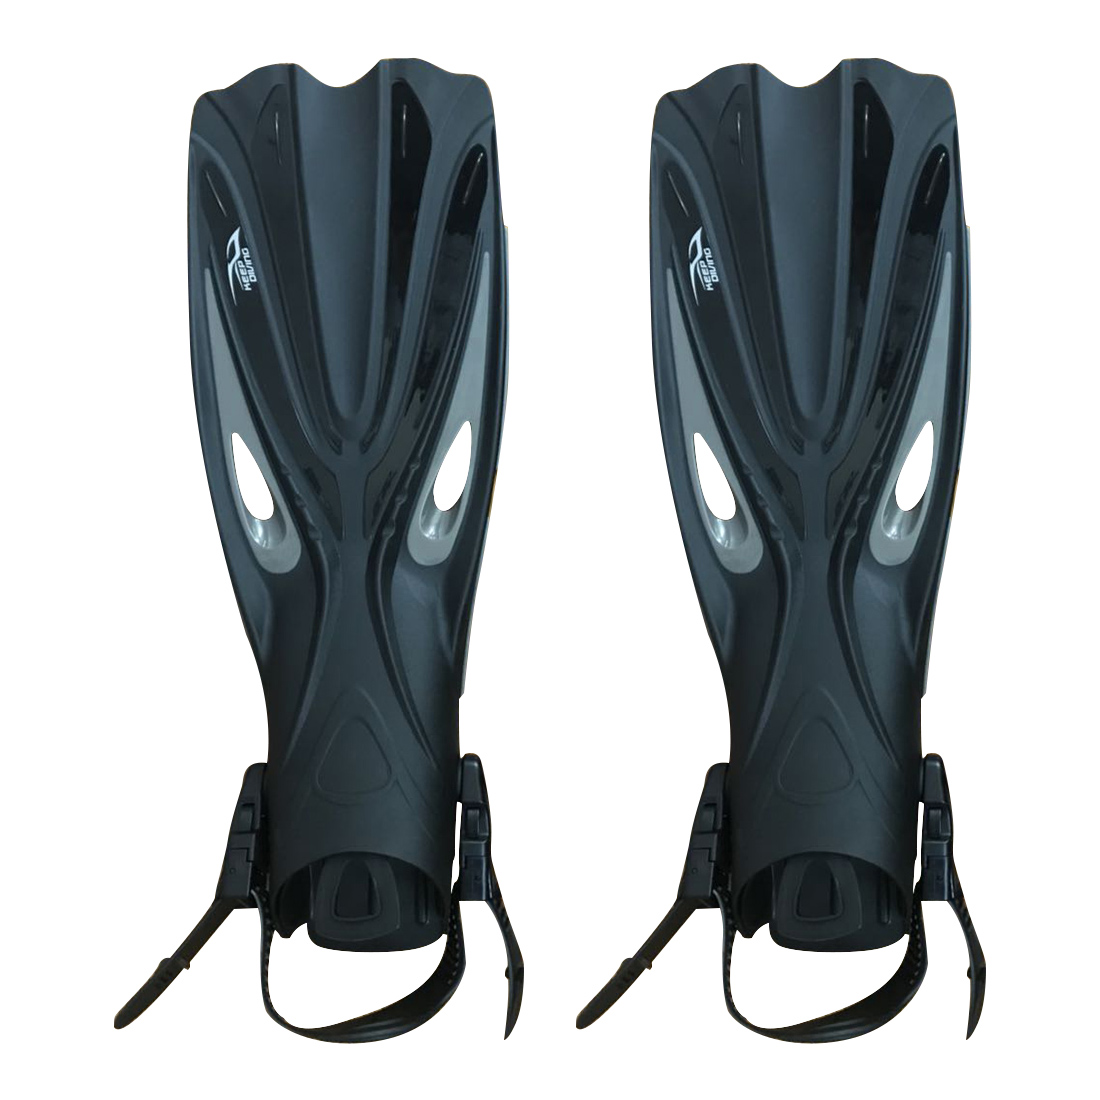 ELOS KEEP DIVING Open Heel Scuba Diving Long Fins Adjustable Snorkeling Swim Flippers Special For Diving